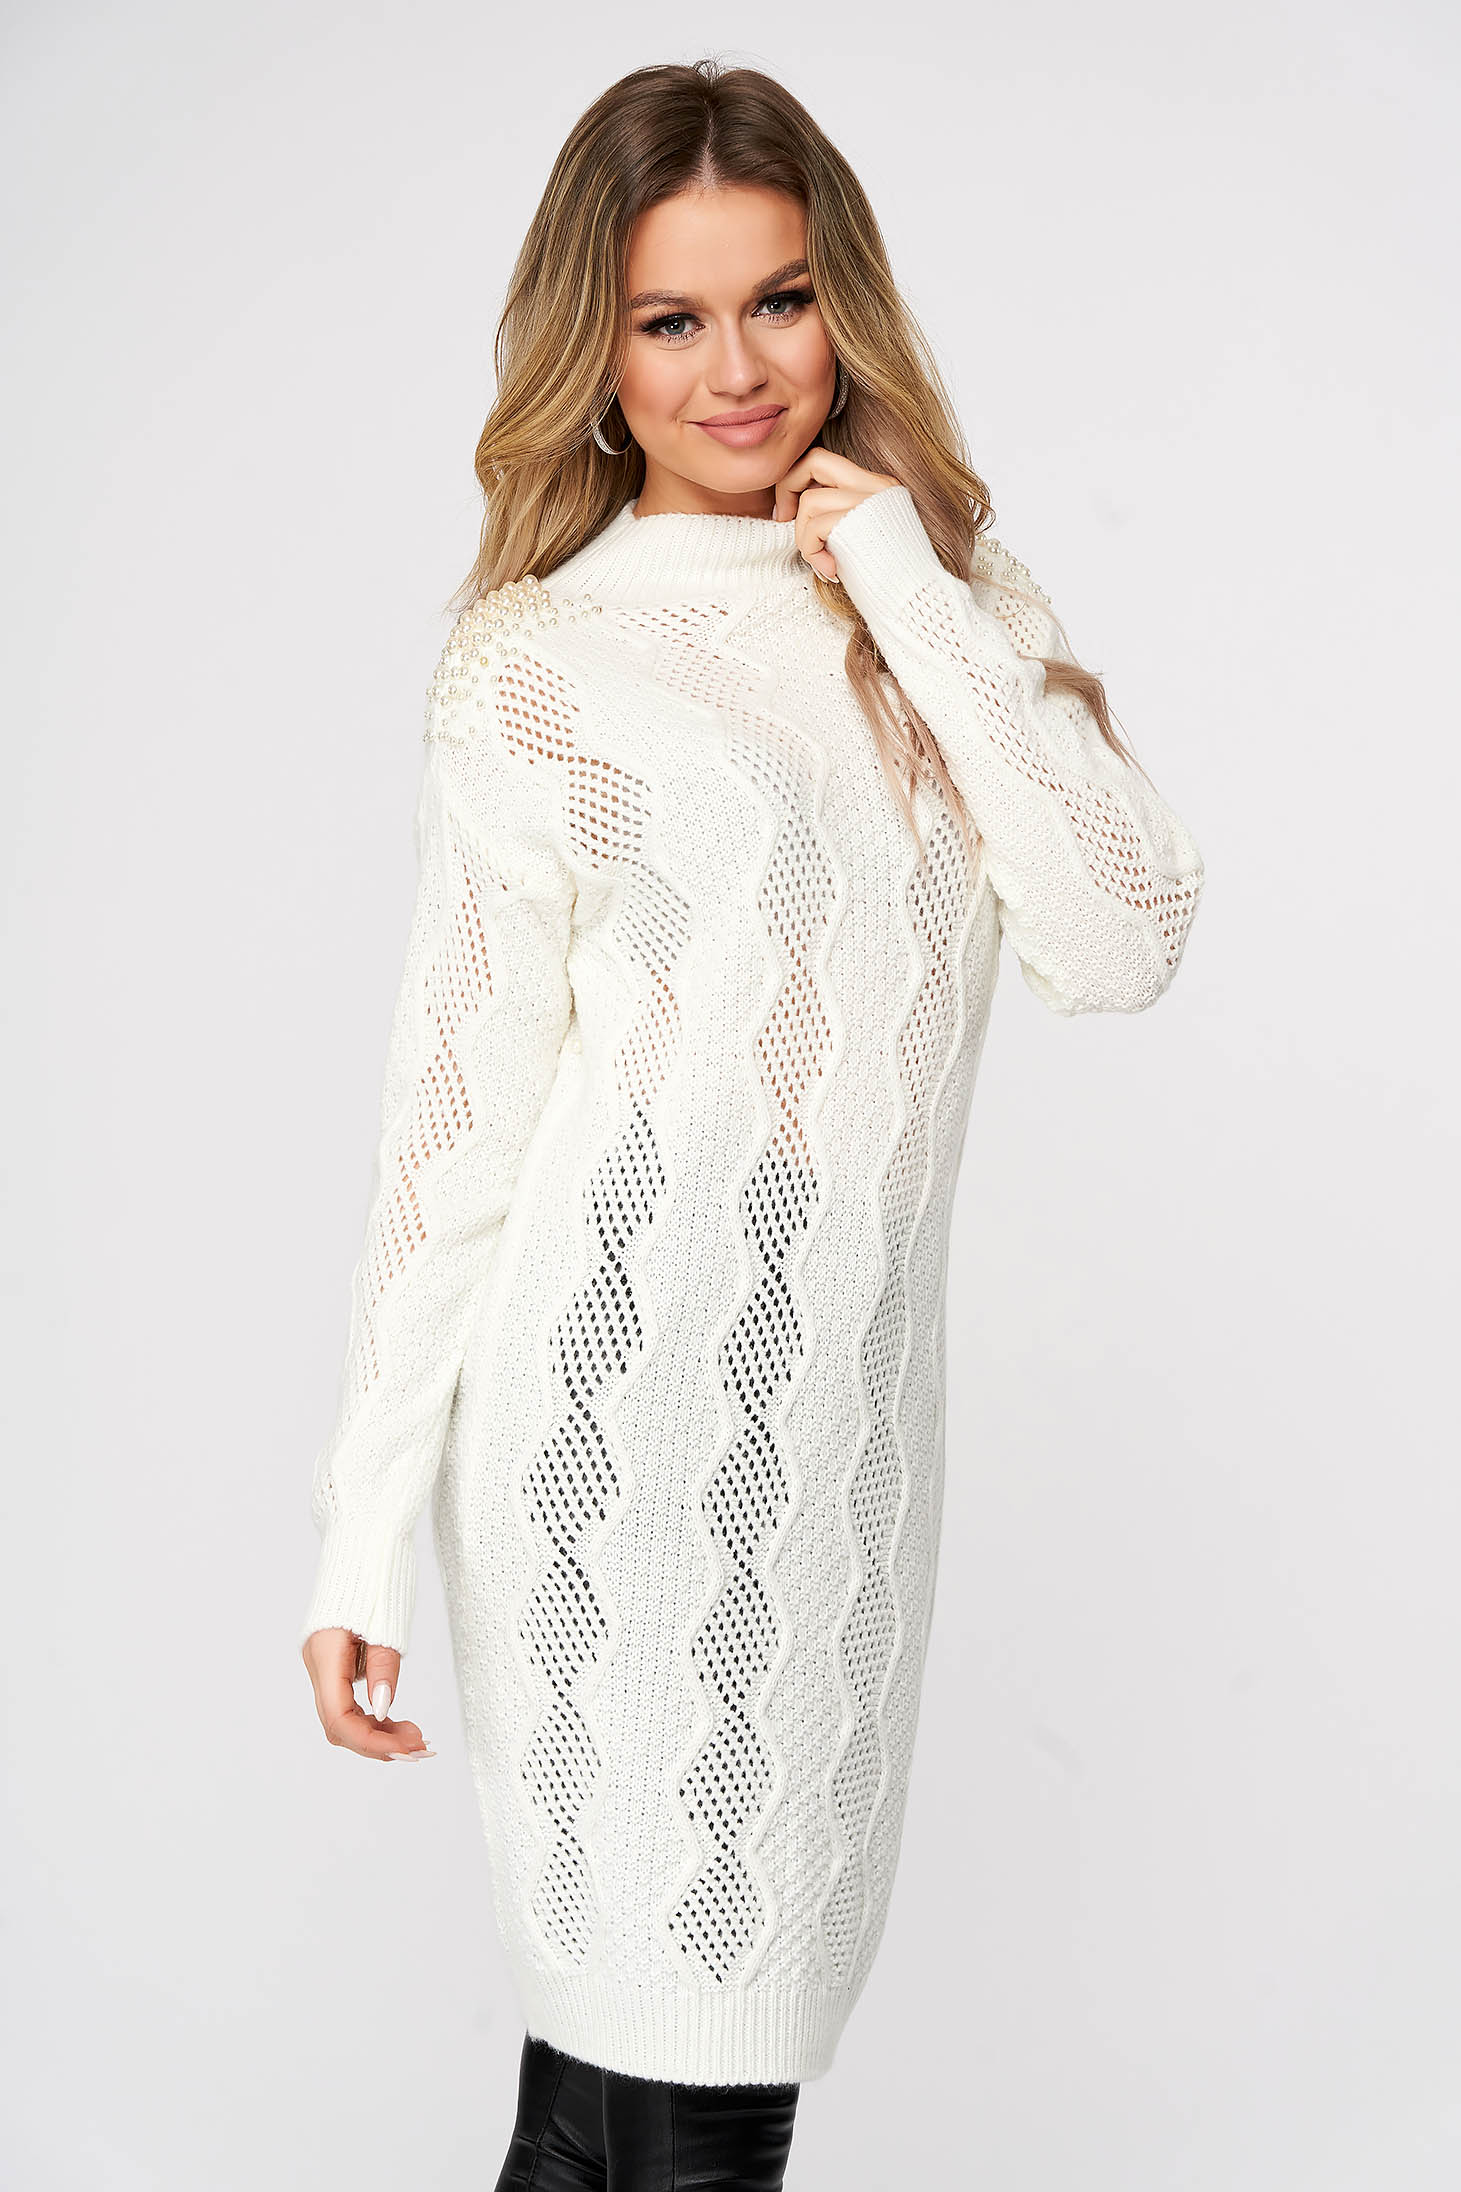 White knitted long sweater flared with pearls